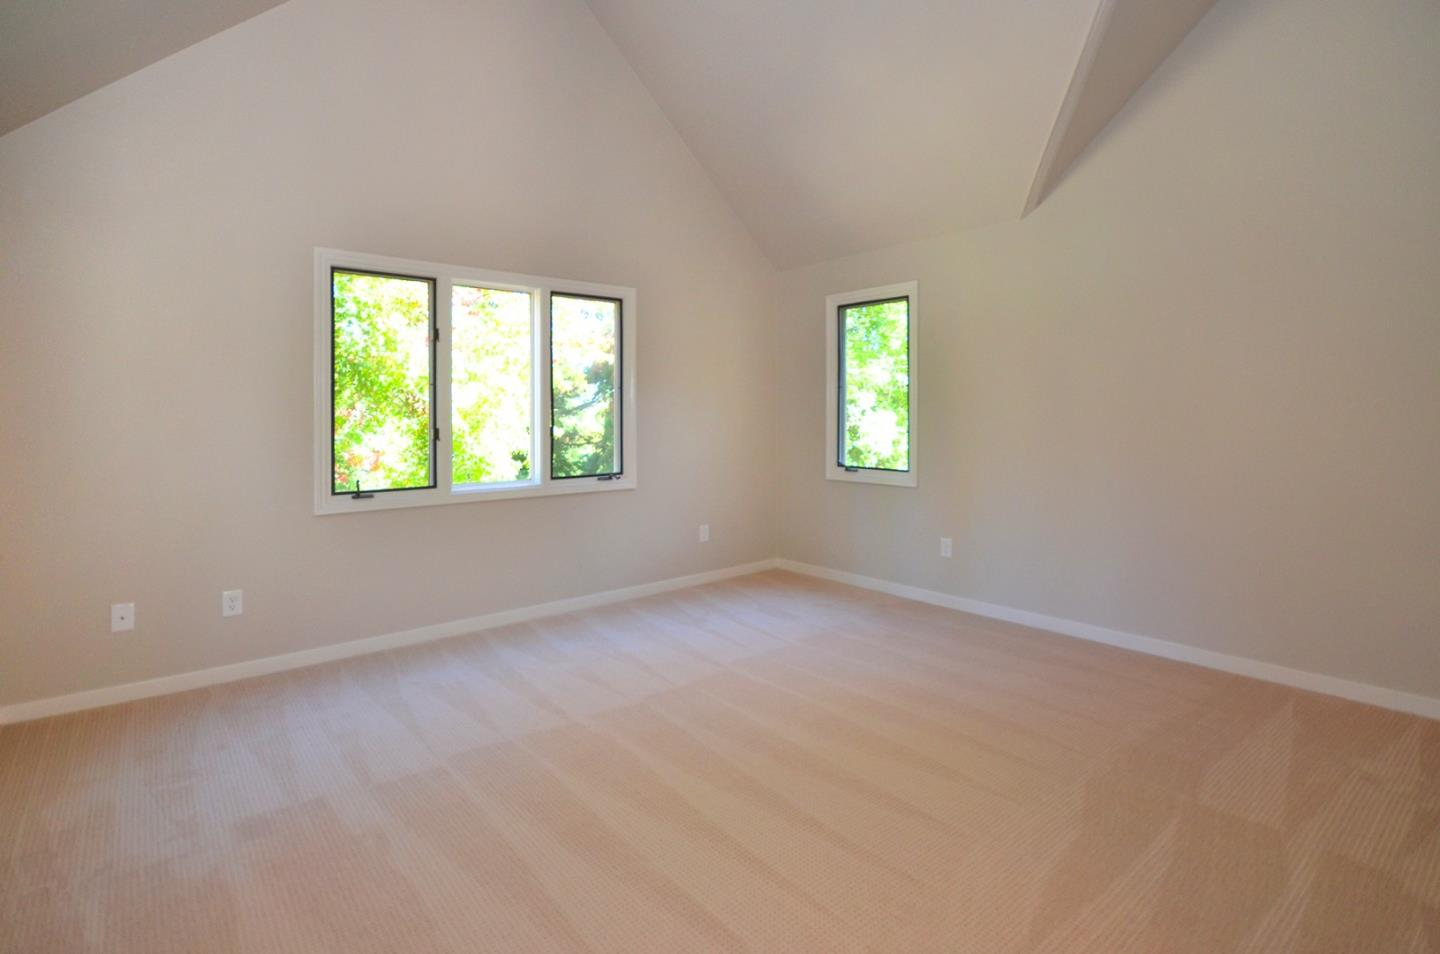 Additional photo for property listing at 109 Rockridge Ct  SANTA CRUZ, CALIFORNIA 95060